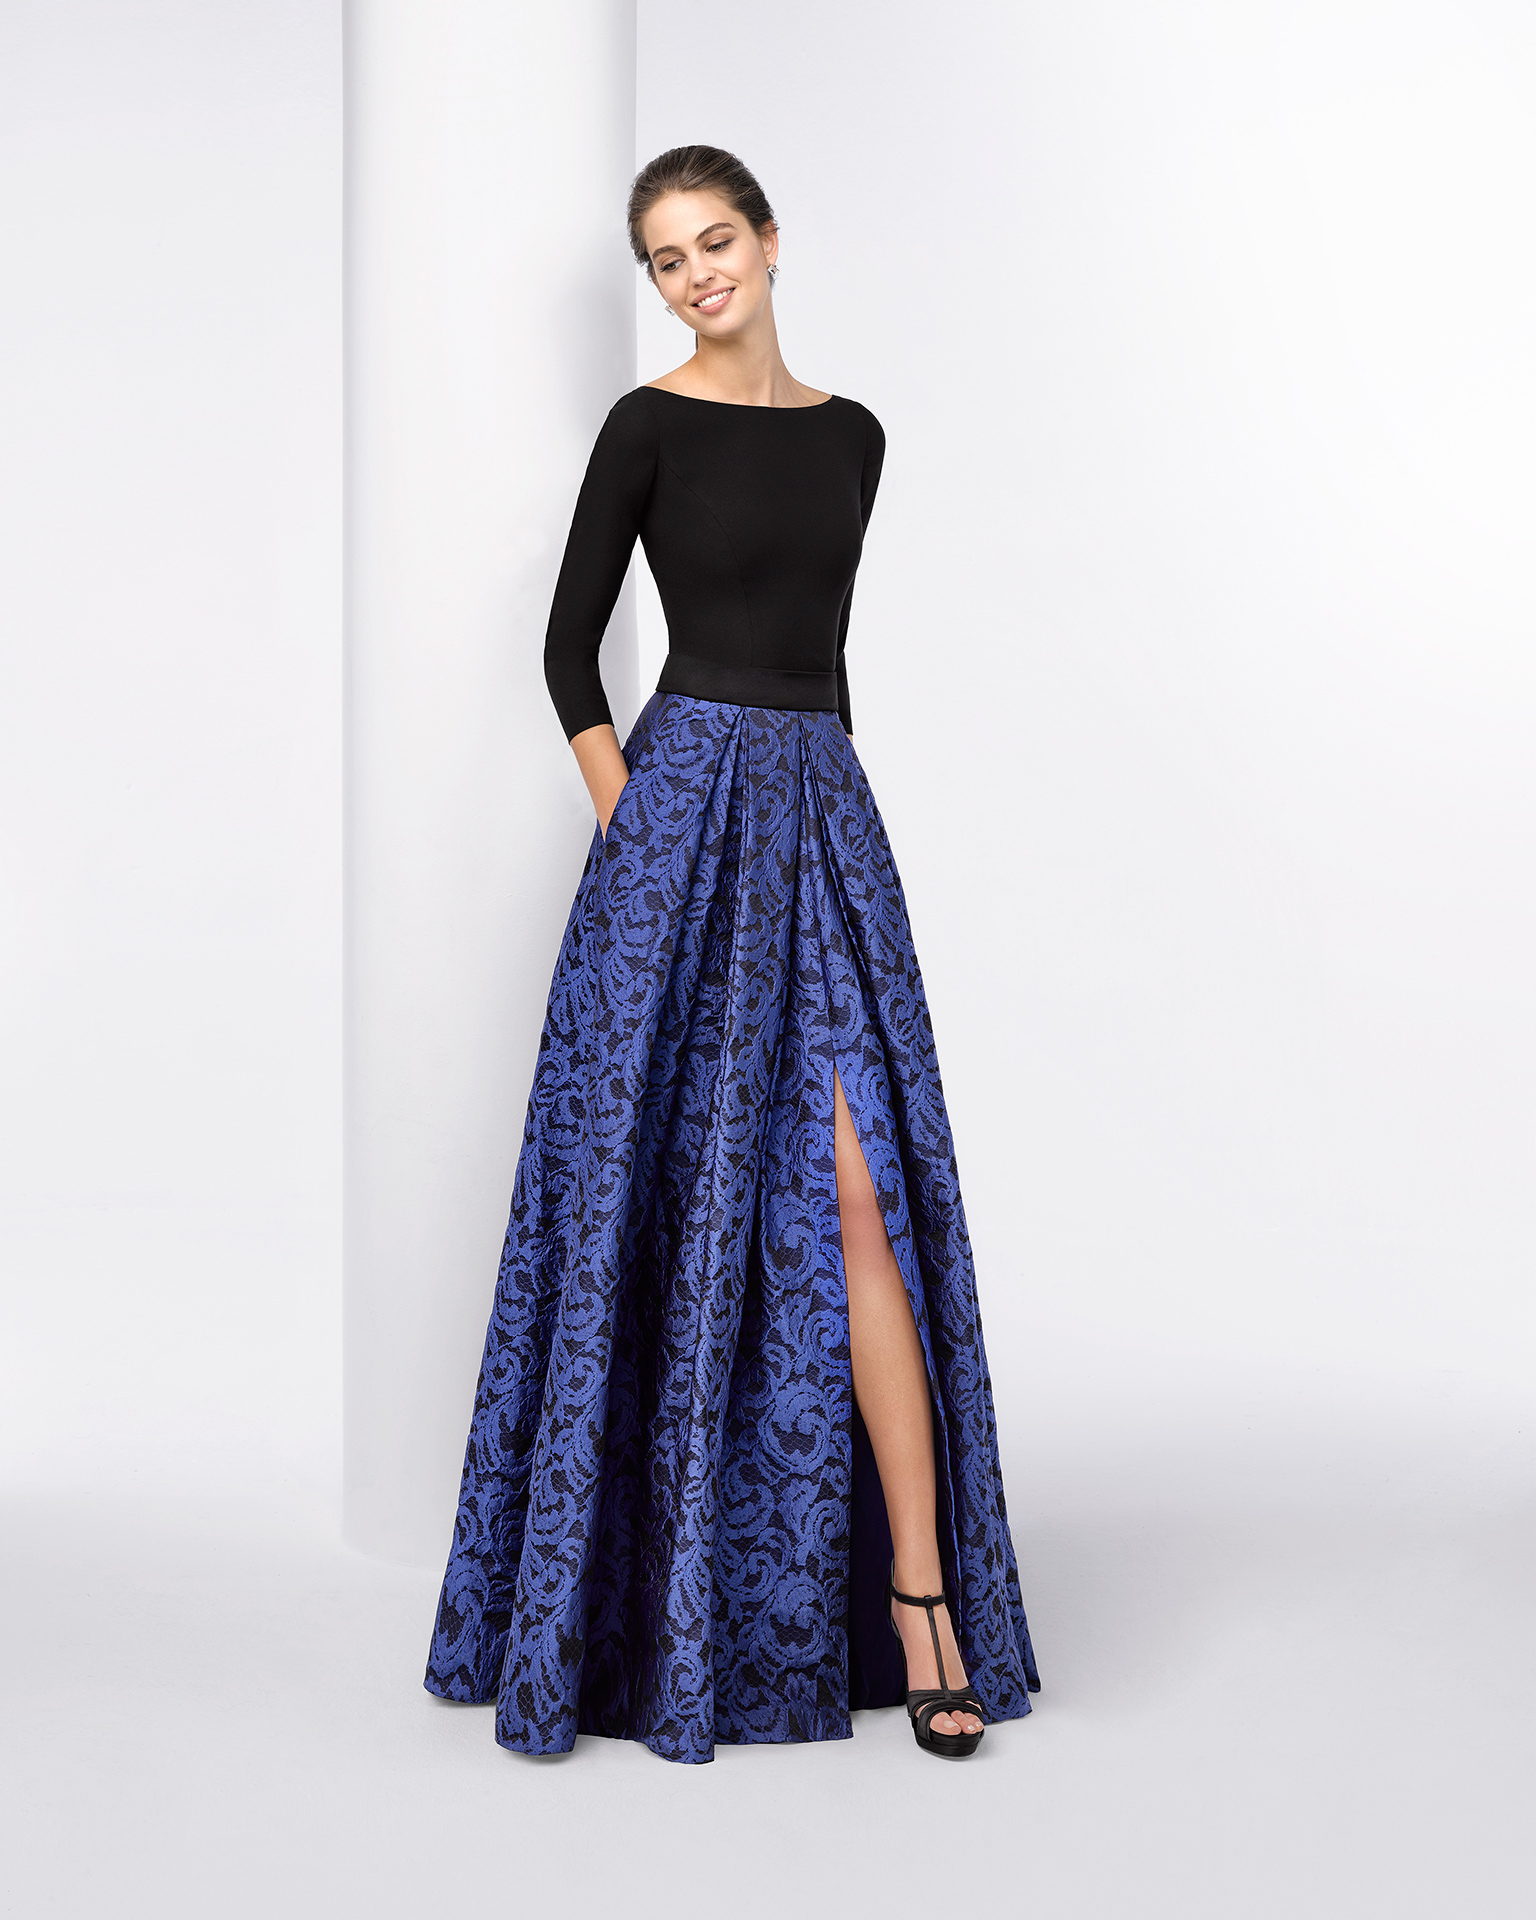 Long cocktail dress with rigid bodice, three-quarter sleeves and structured full brocade skirt with slit front. Available in cobalt/black. 2018 FIESTA AIRE BARCELONA Collection.